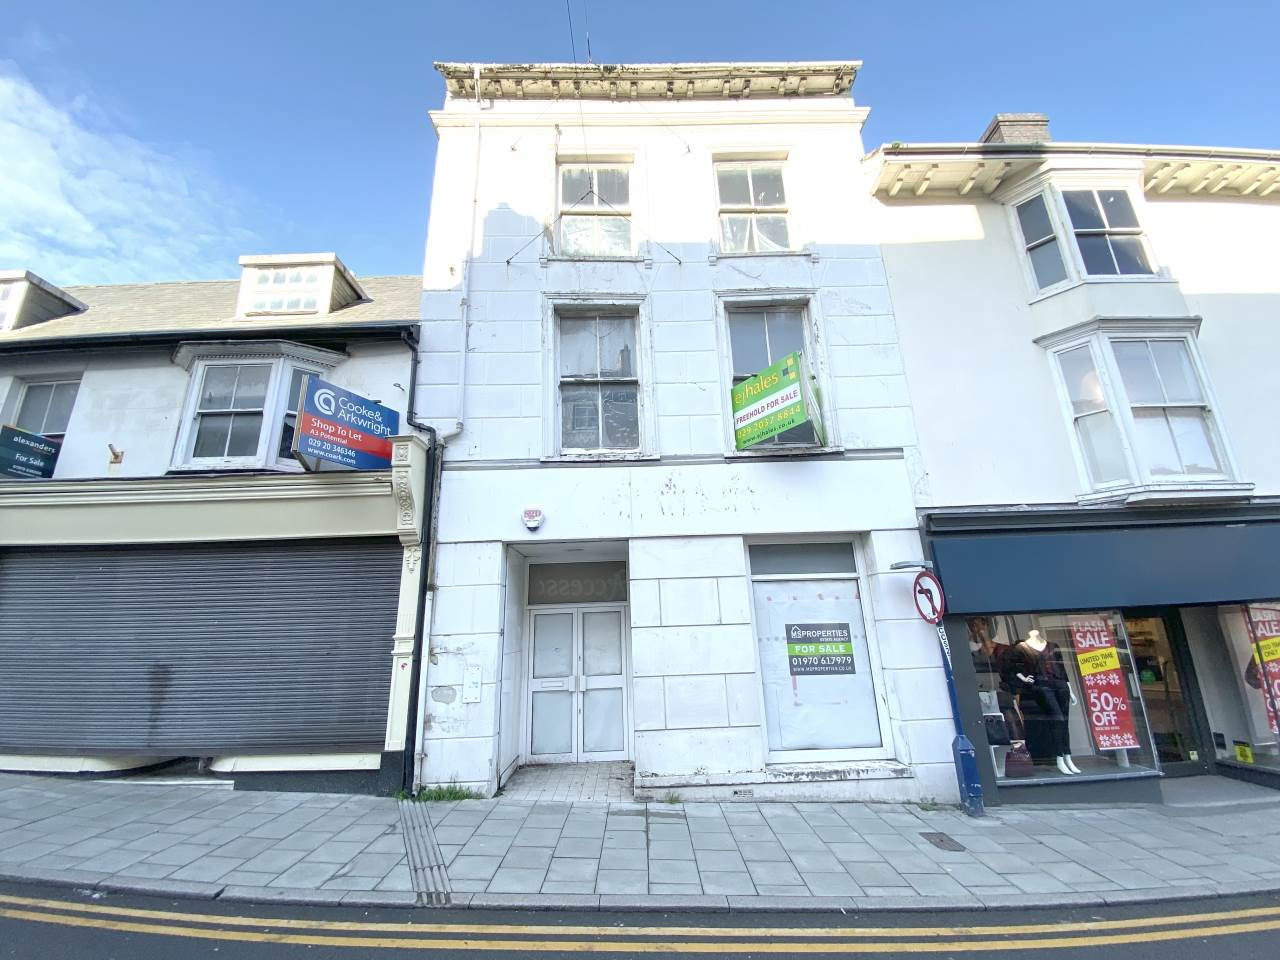 Commercial property for sale in Great Darkgate Street, Aberystwyth, SY23